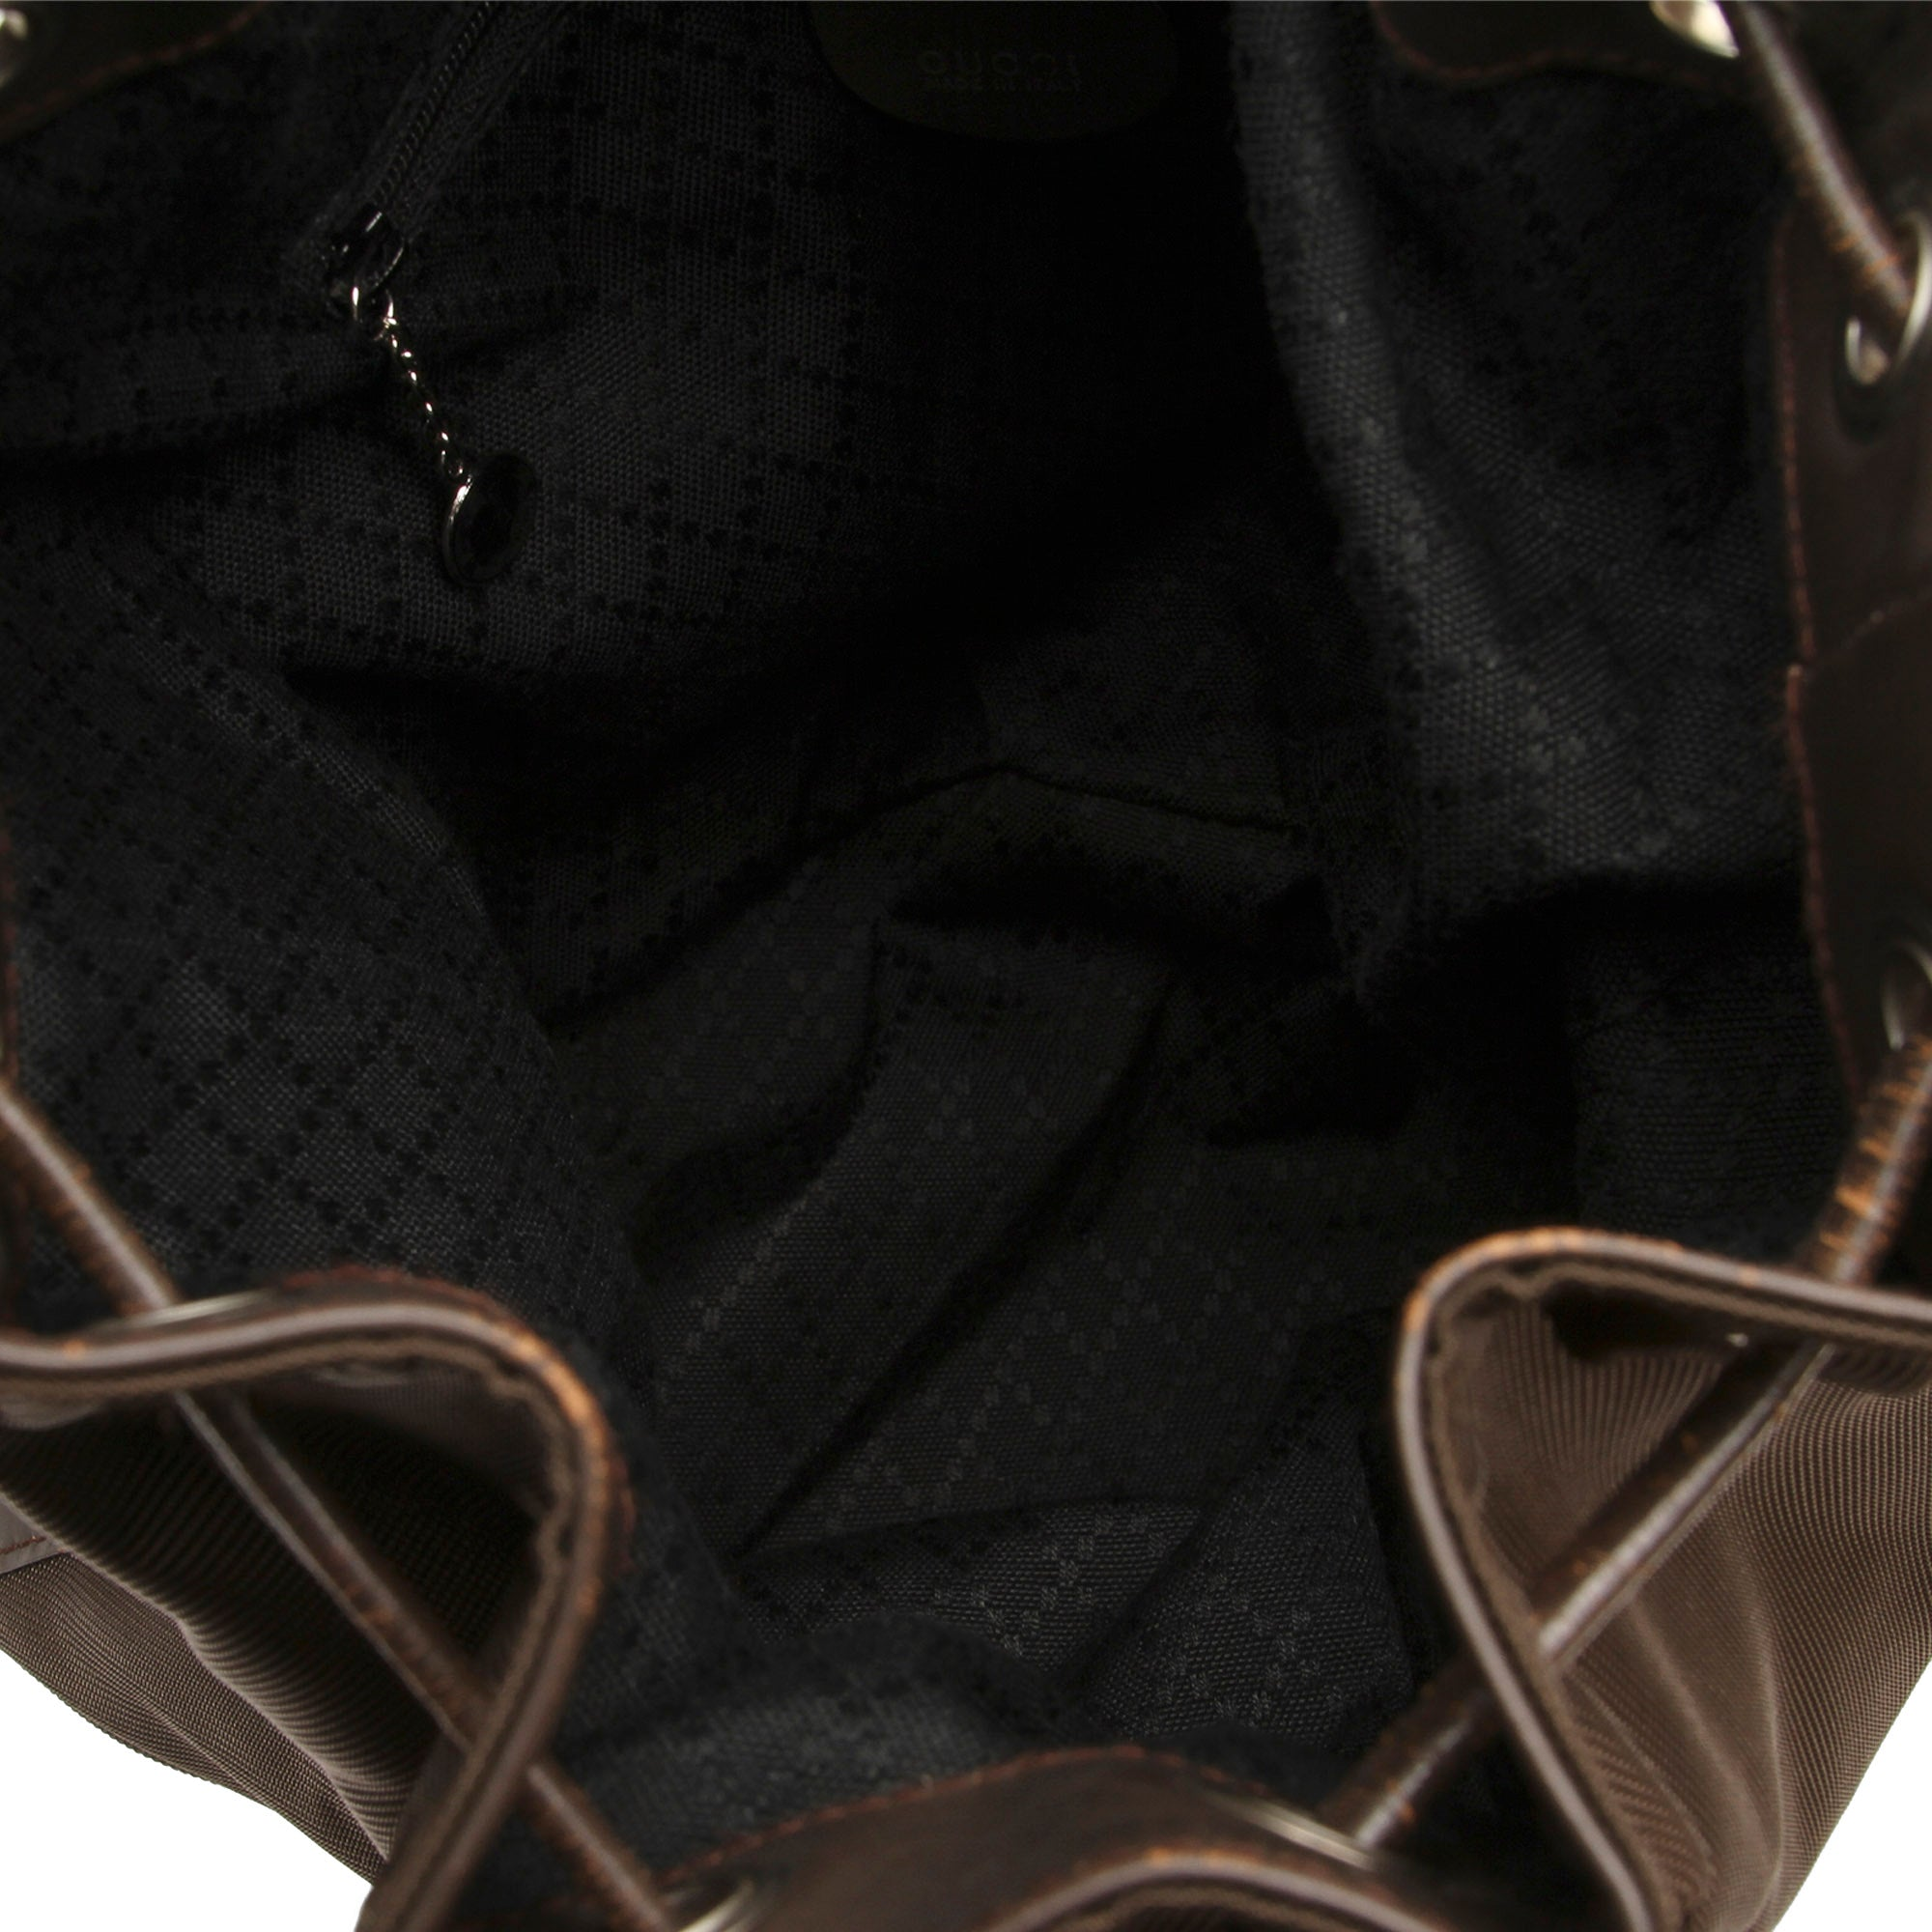 Gucci Black Bamboo Nylon Bucket Bag